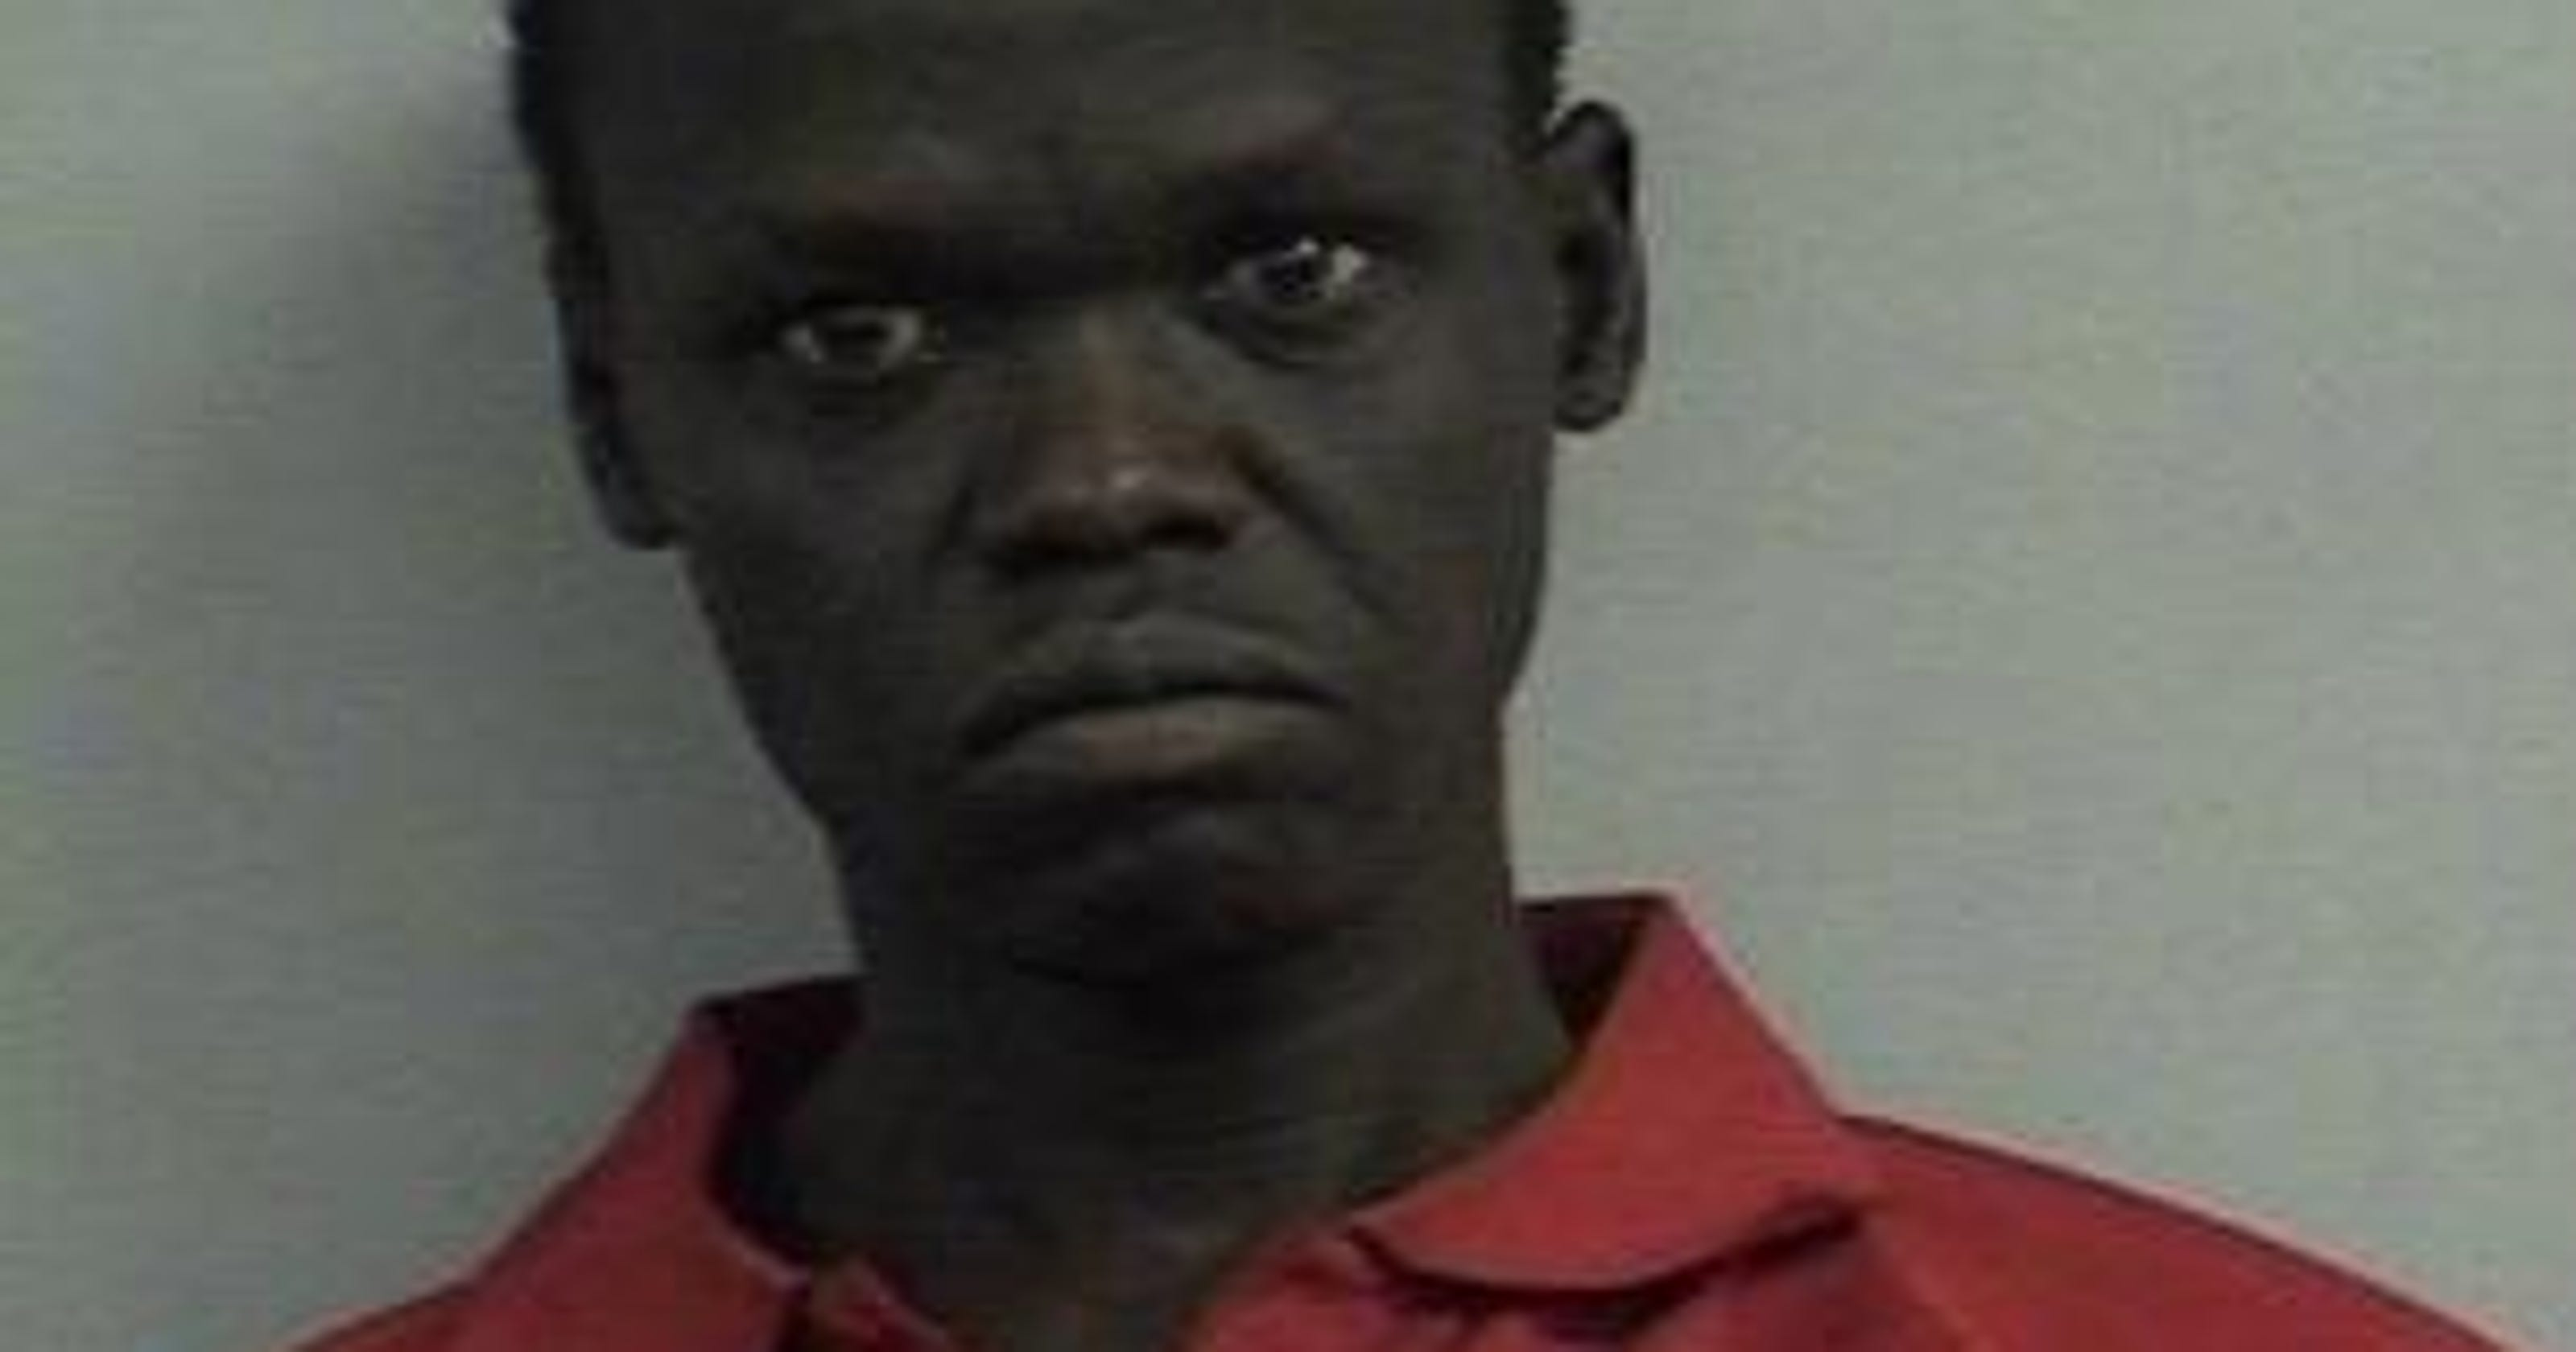 Man shot by police was 'Lost Boy' from Sudan